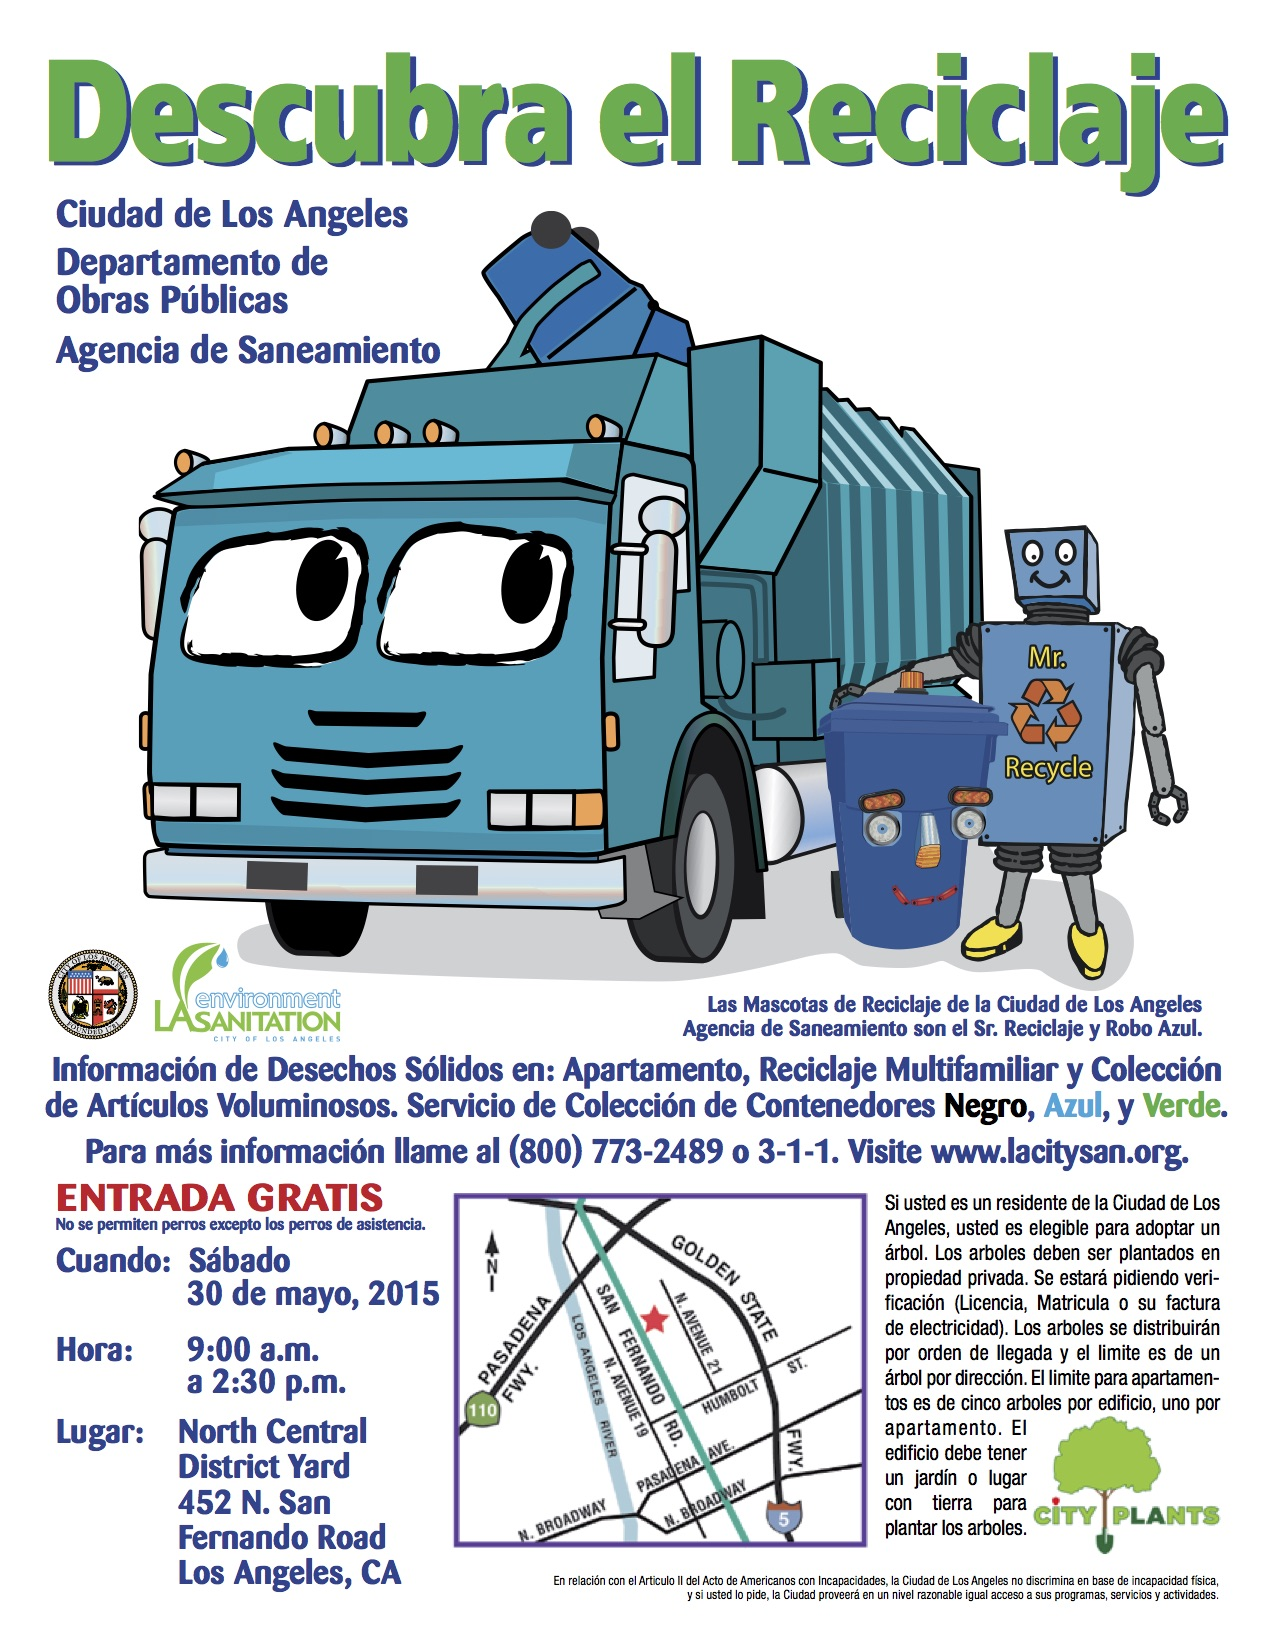 About Bureau Of Sanitation U2013 As The Lead Agency For The Cityu0027s  Environmental Programs And Initiatives, L.A. Sanitation Protects Public  Health And The ...